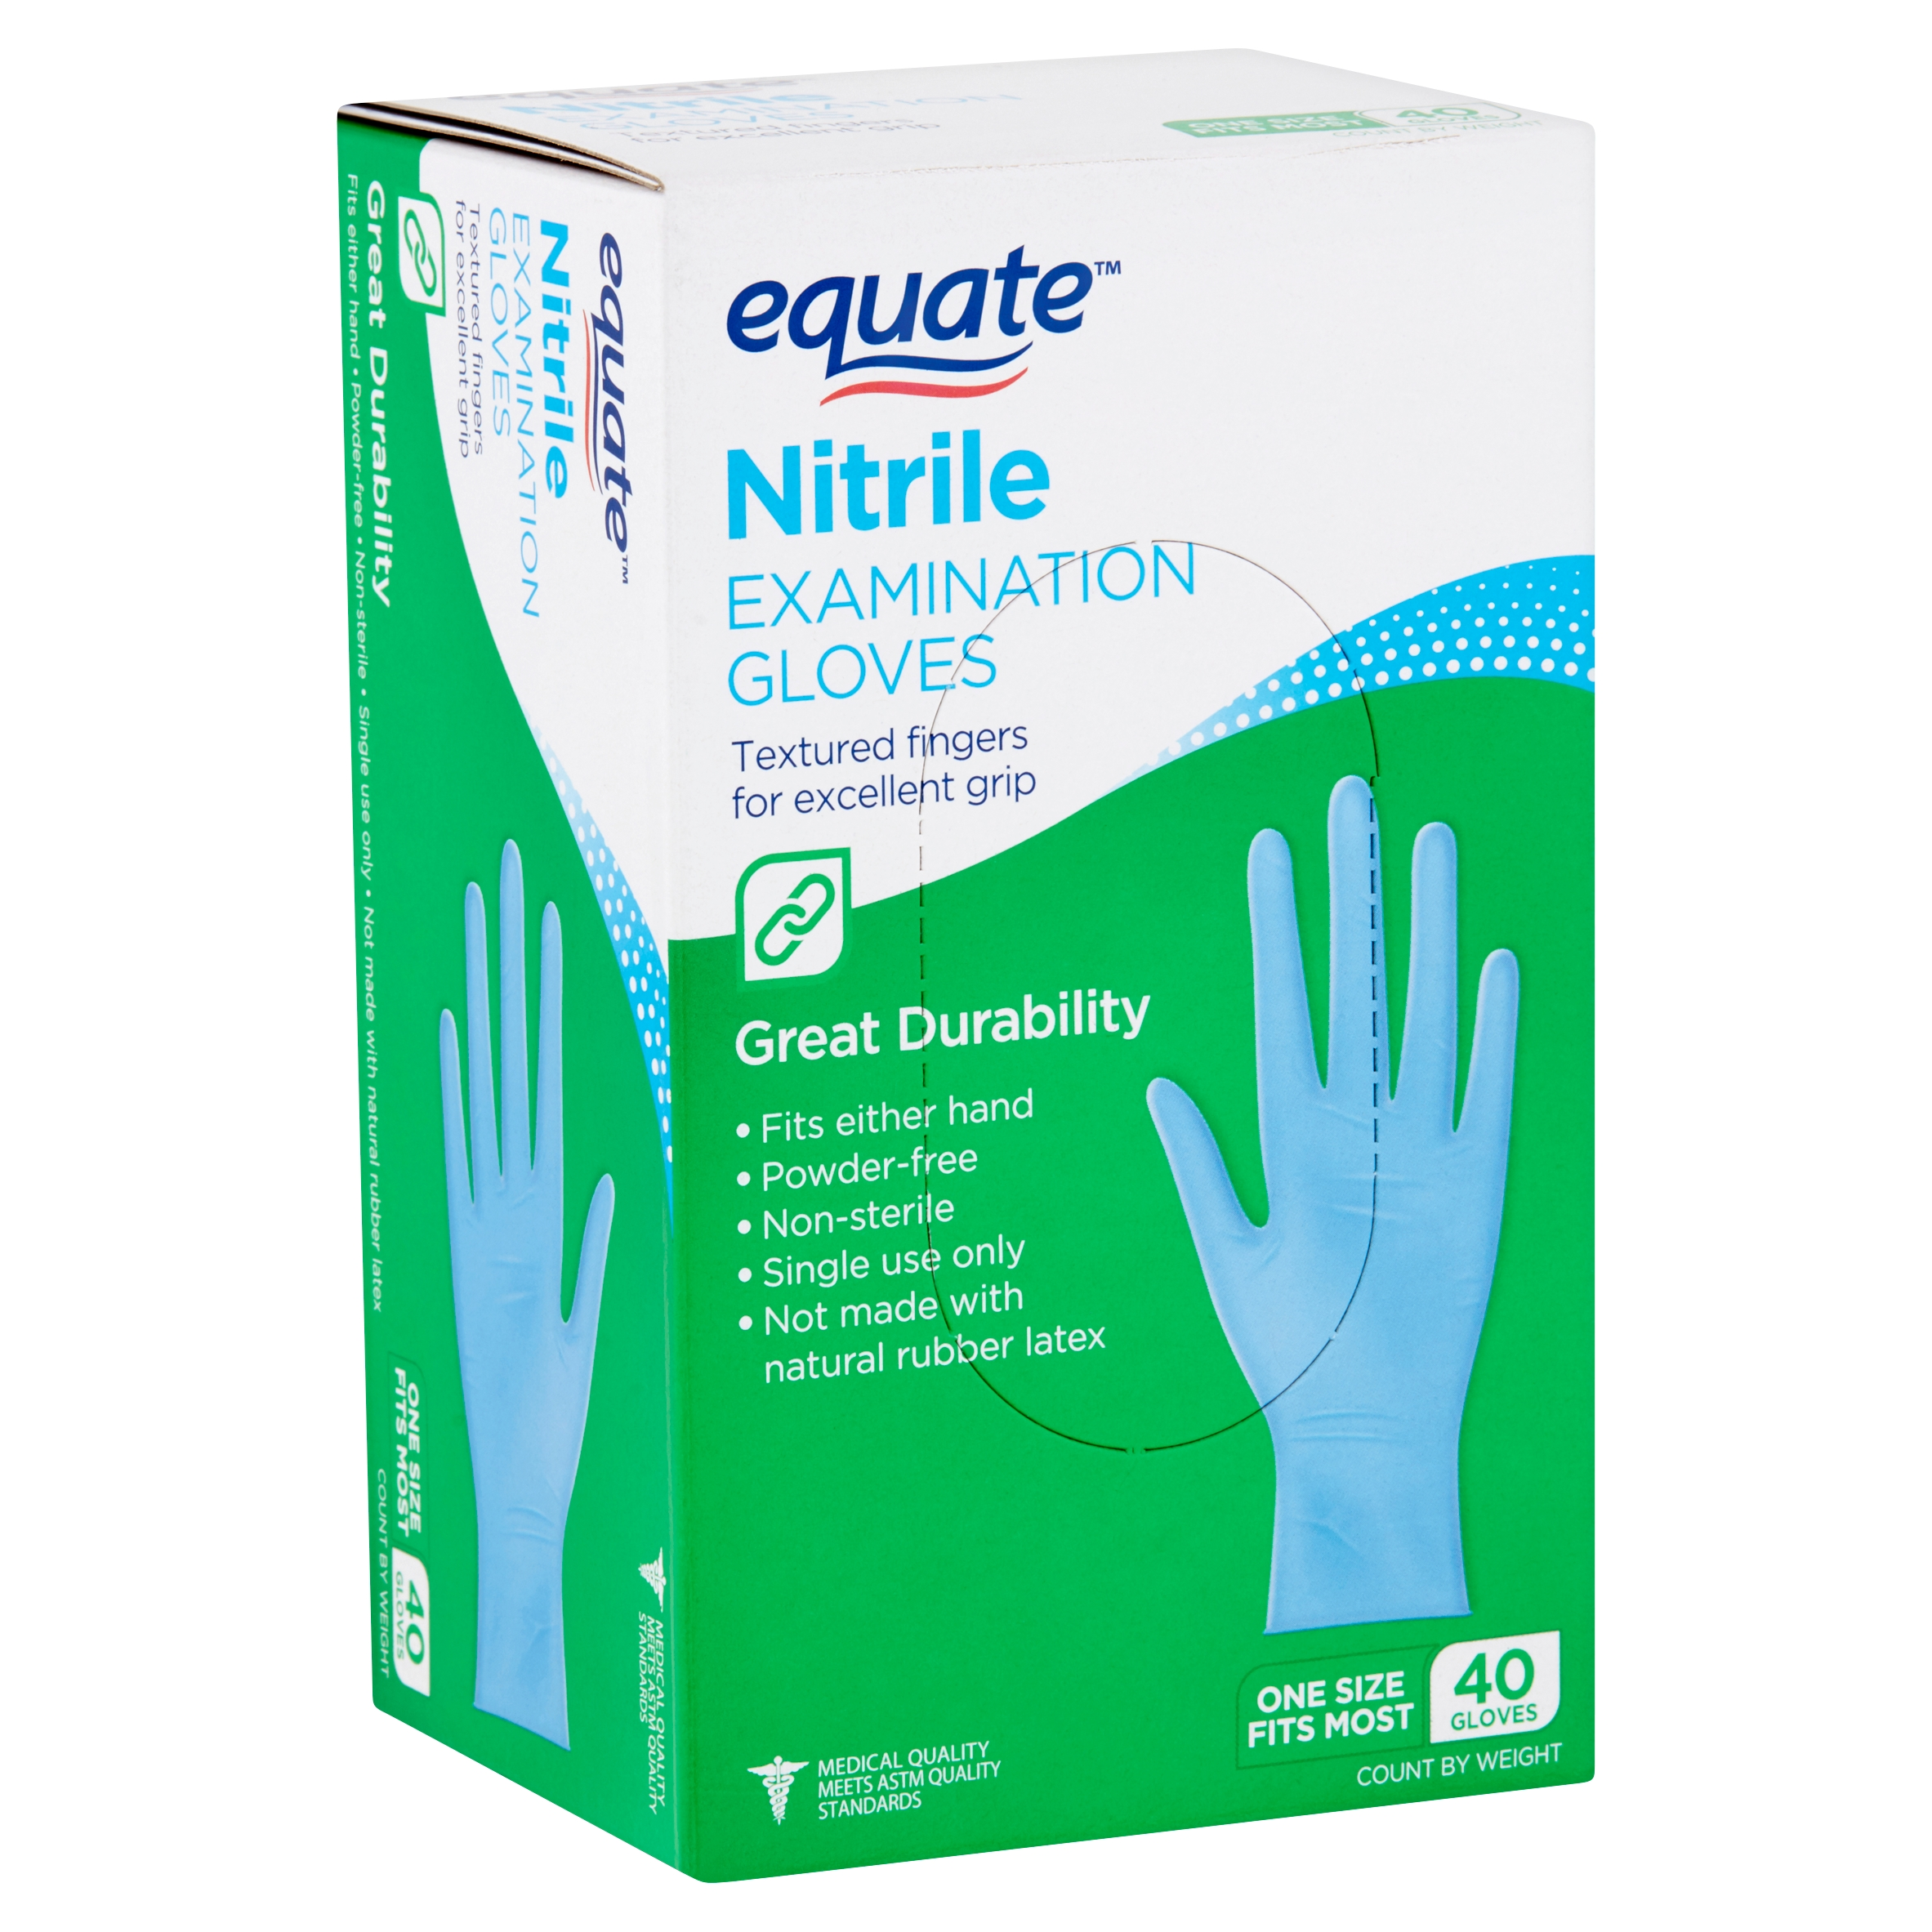 Equate Nitrile Examination Gloves, 40 count